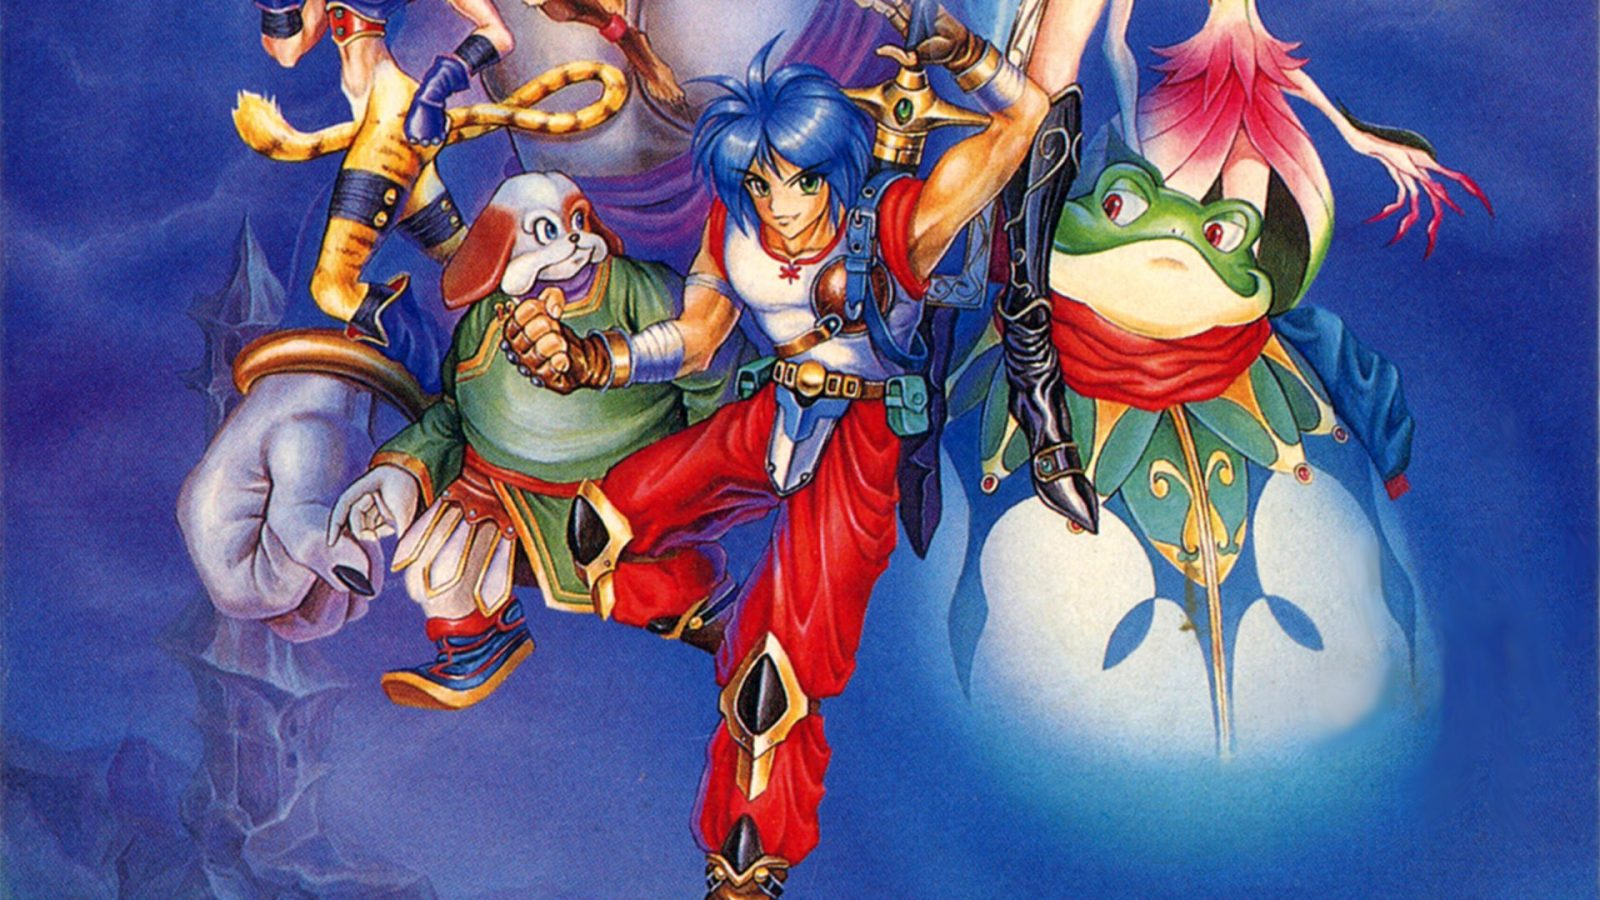 25 Years Ago, Breath of Fire 2 Was My First Journey to Kill God, and It Was Good